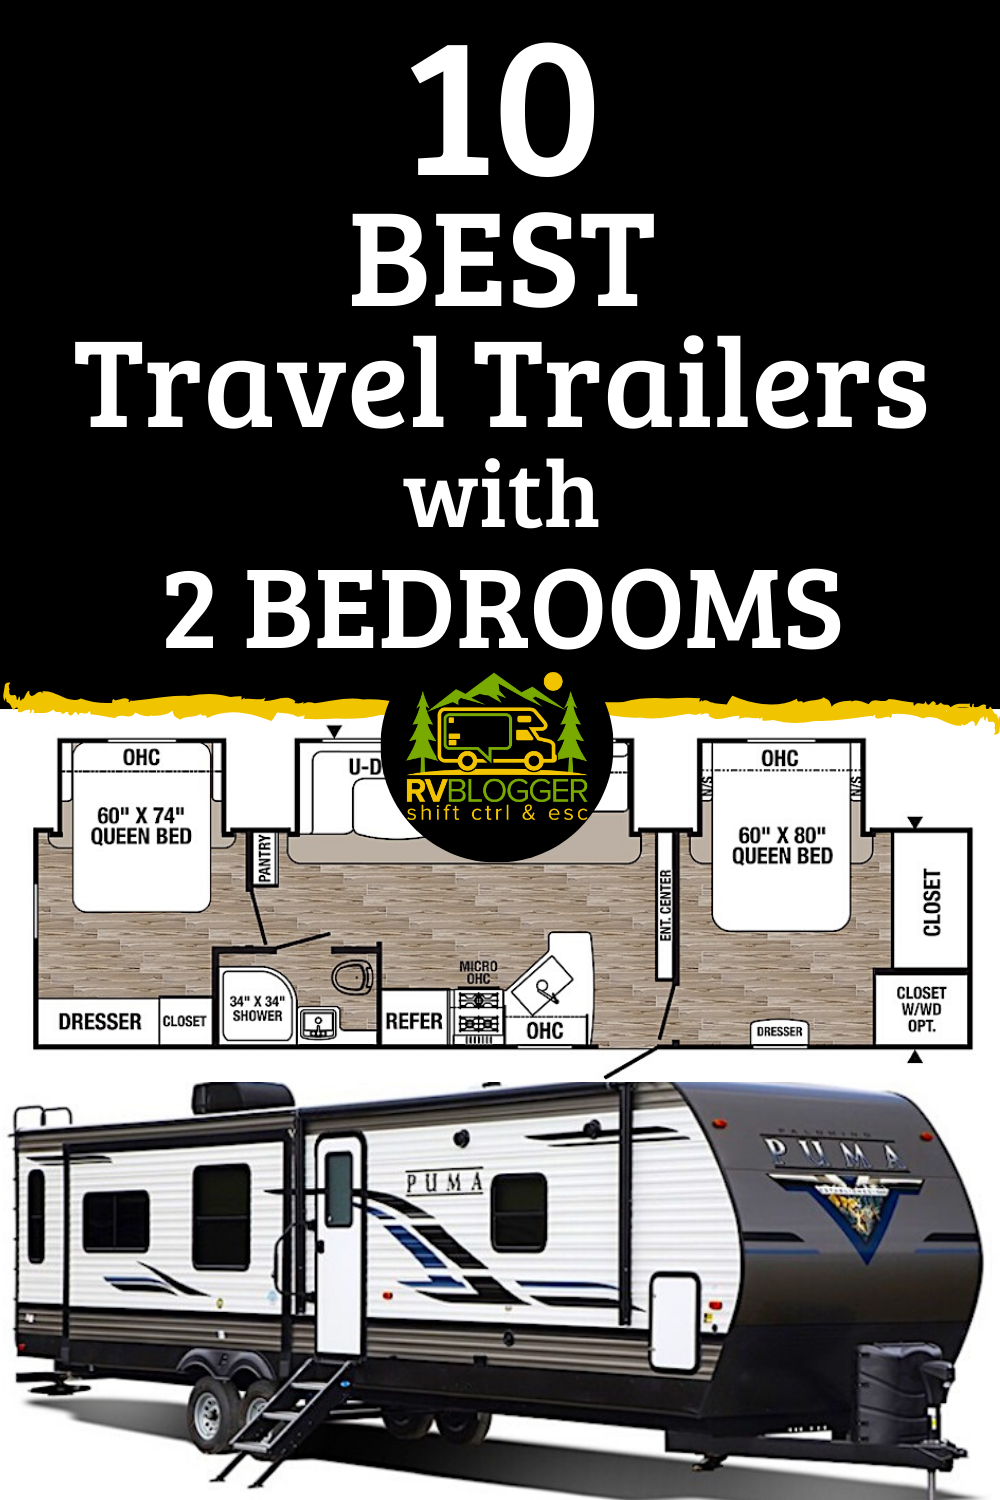 10 Best Travel Trailers With 2 Bedrooms Rvblogger In 2020 Best Travel Trailers Travel Trailer Floor Plans Travel Trailer Living